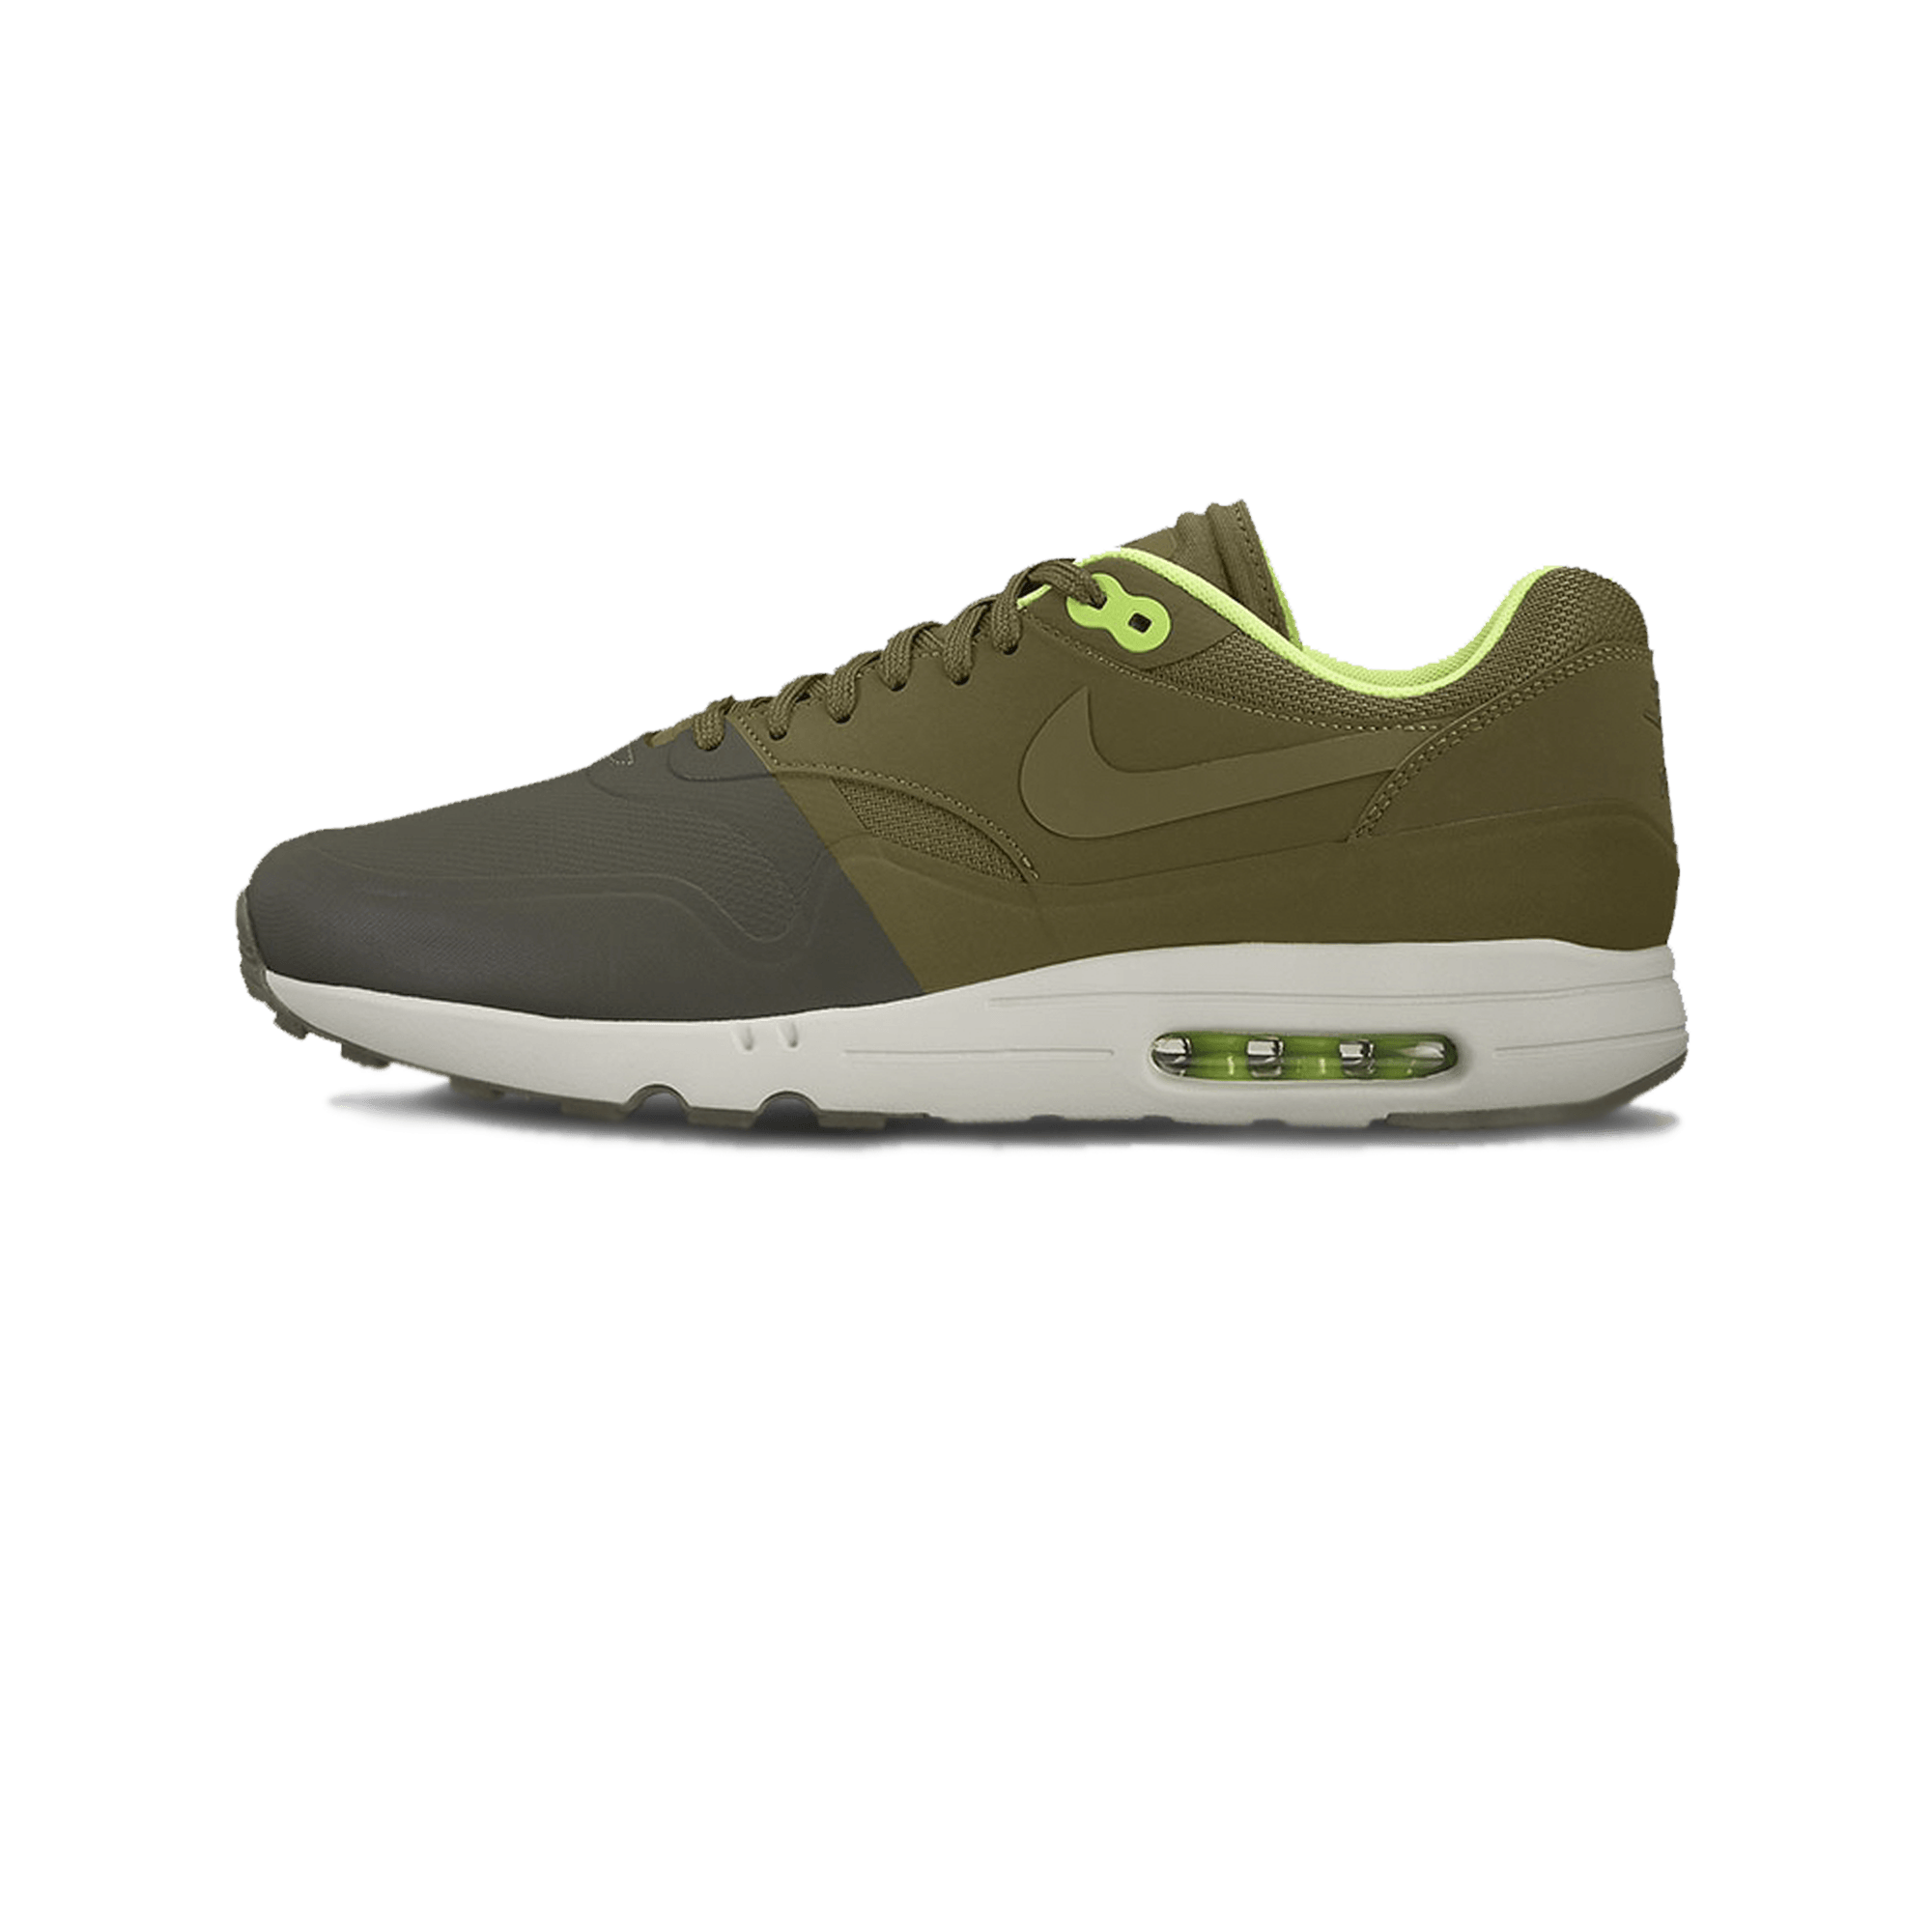 9d59e27b201e Nike Air Max 1 Ultra 2.0 SE cargo khaki militia green - Men ...